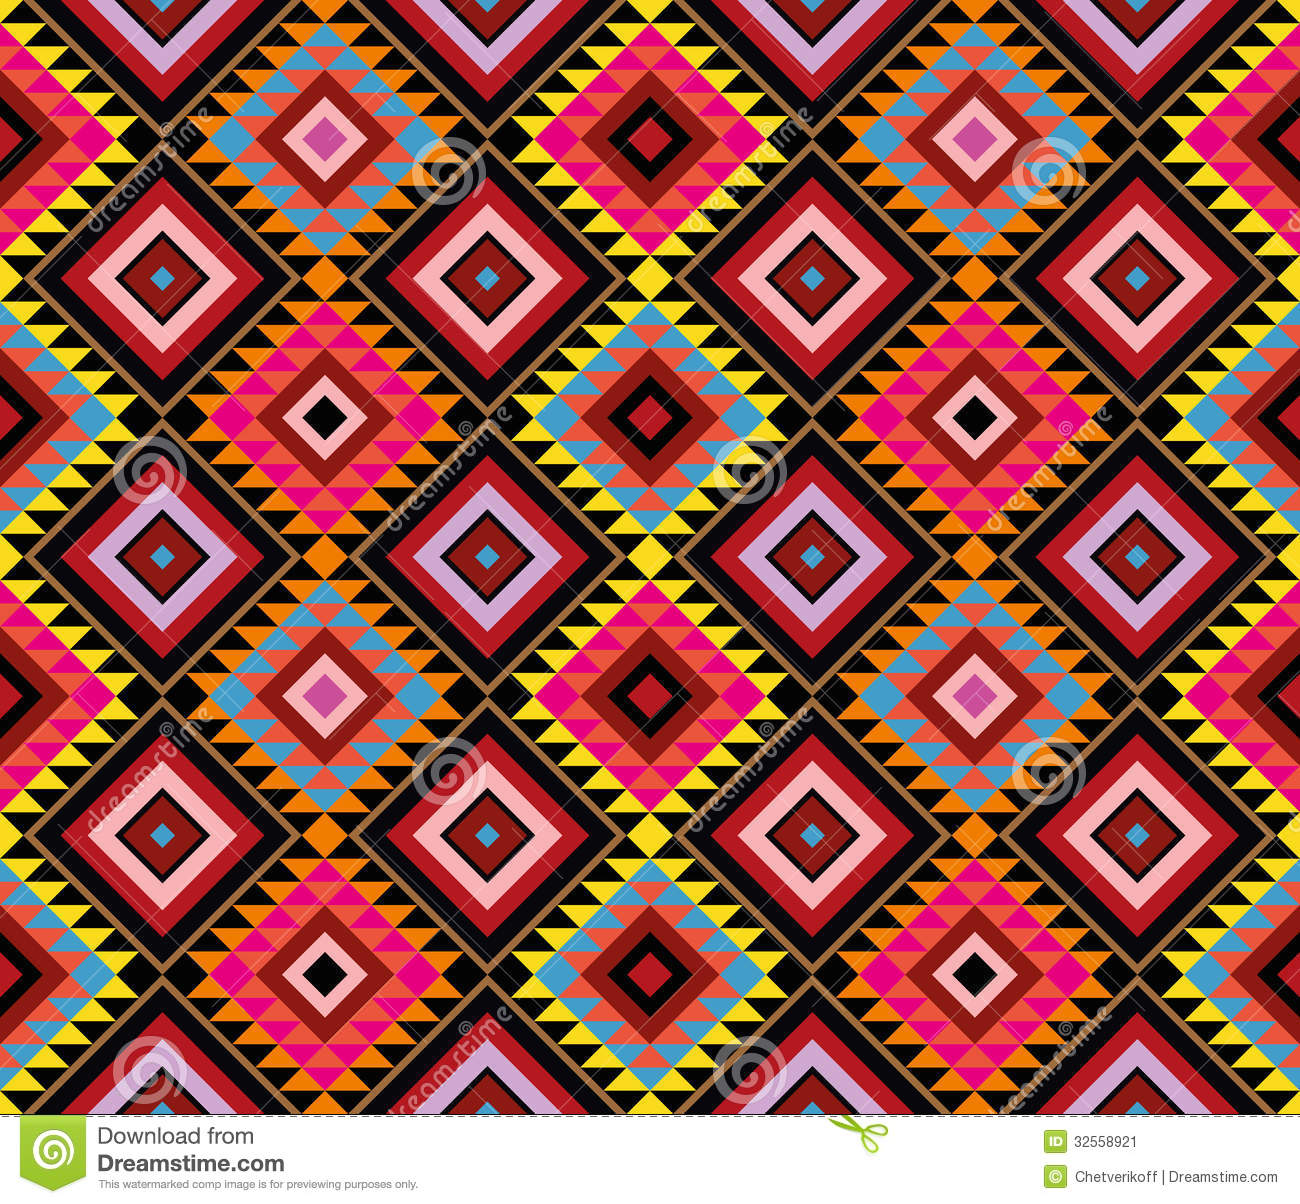 http://www.wallpapersin4k.org/wp-content/uploads/2017/04/Tribal-Patterns-Wallpaper-15.jpg